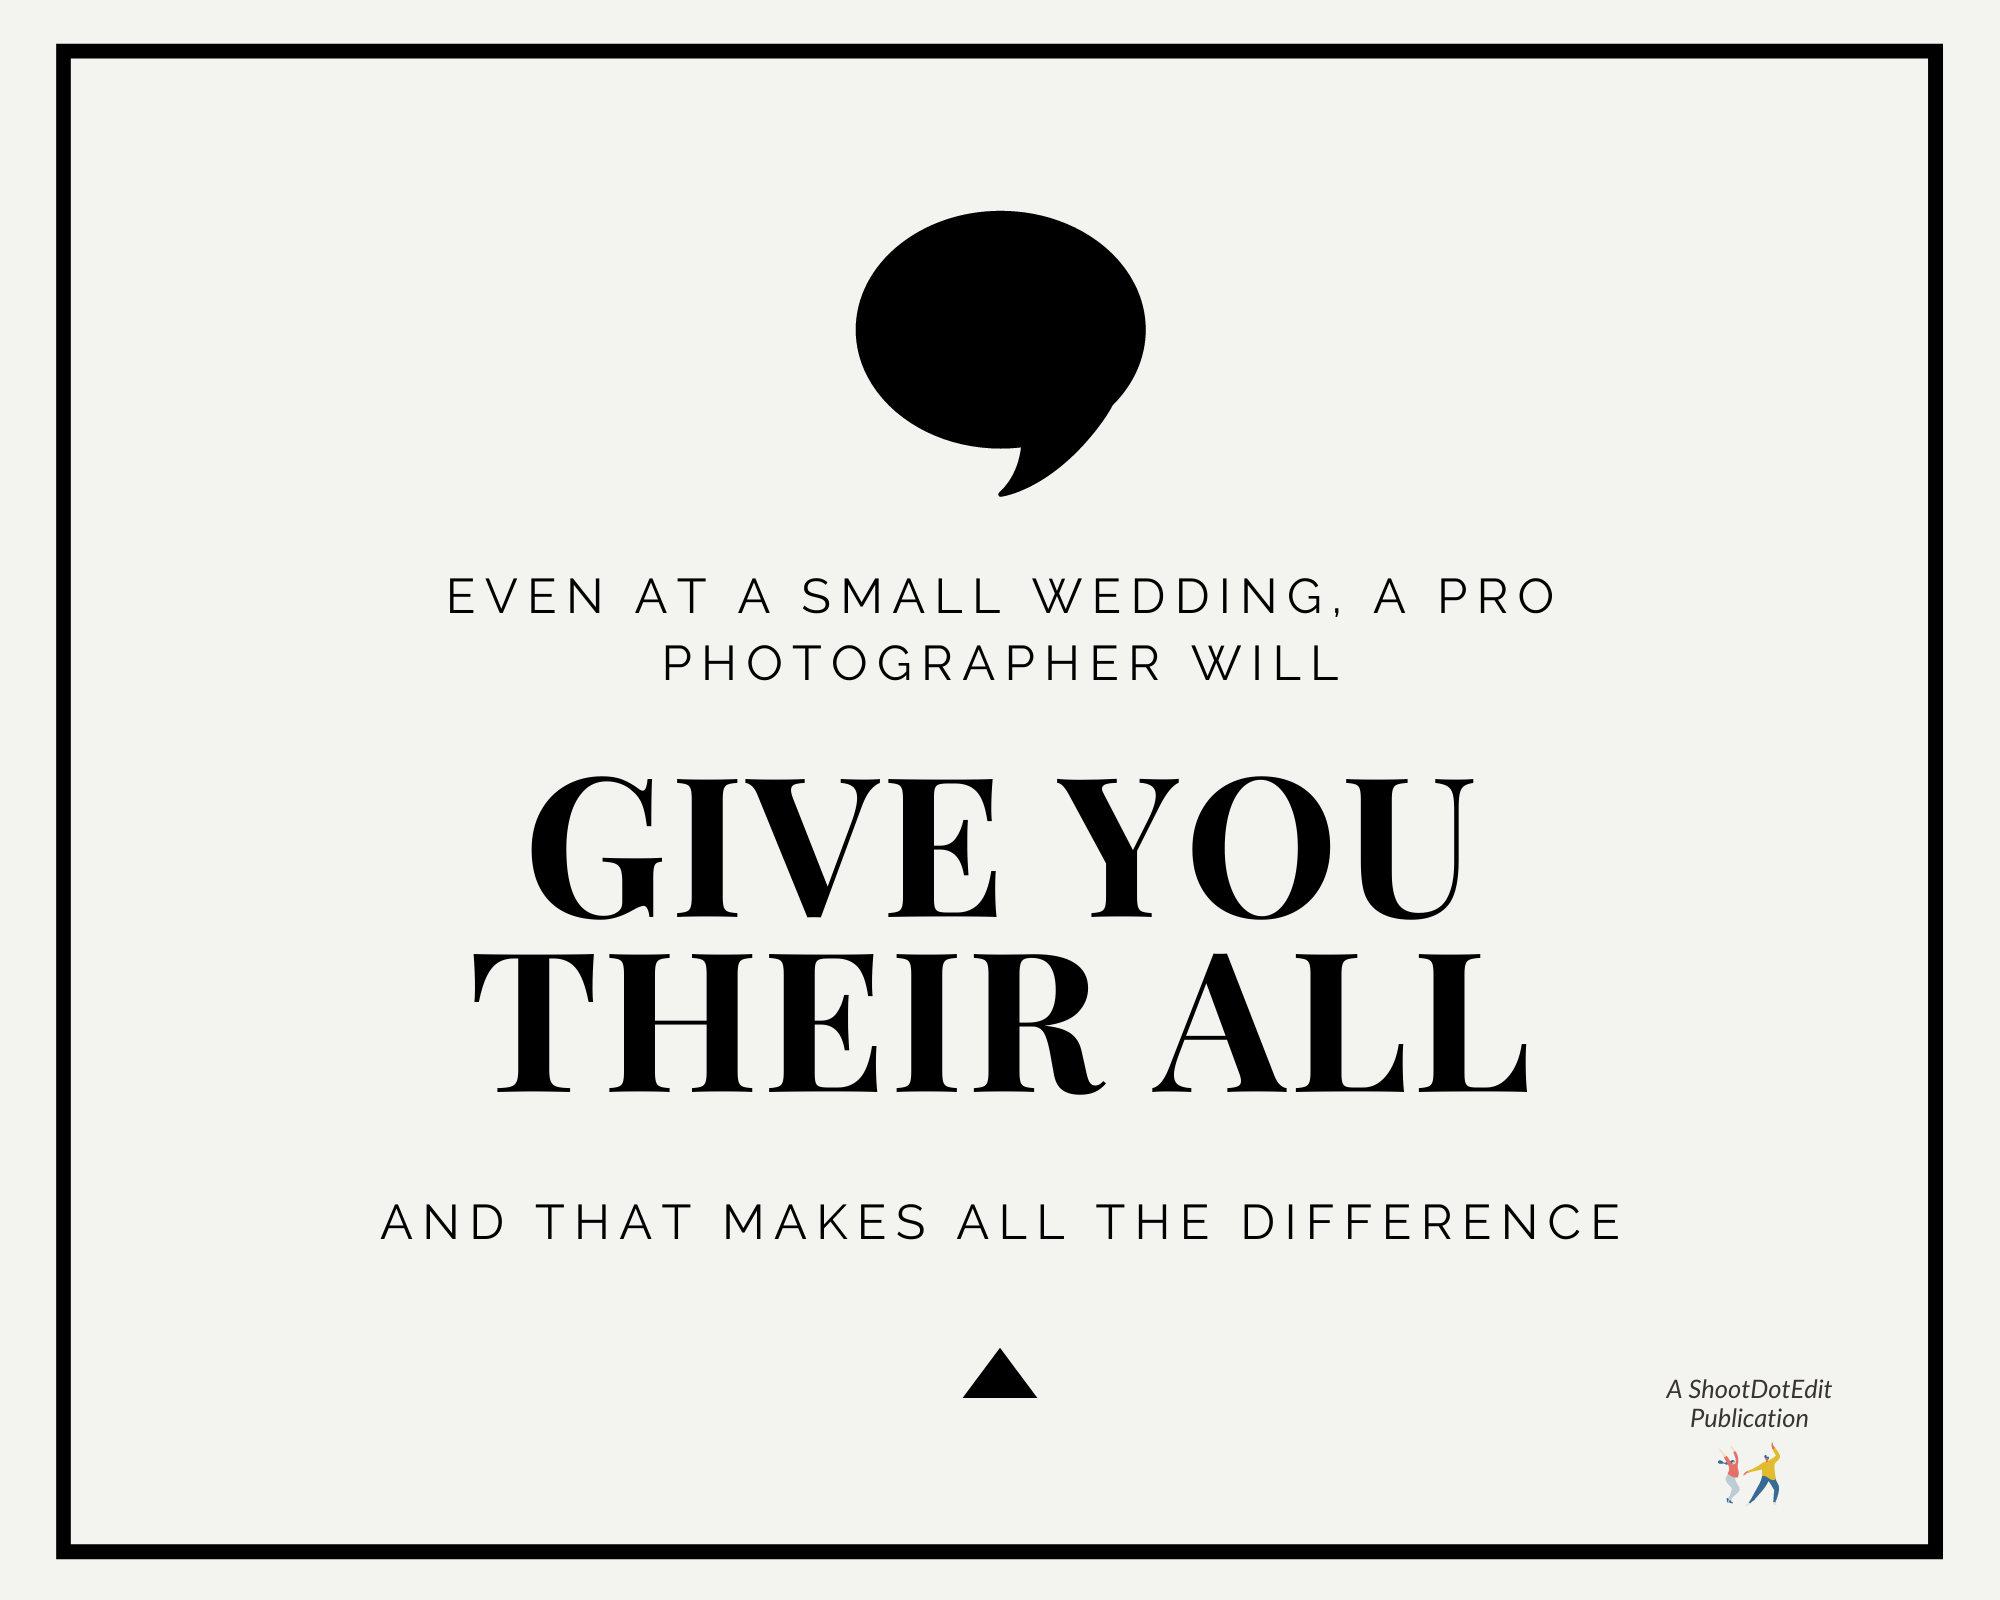 Infographic stating - Even at a small wedding, a pro photographer will give you their all and that makes all the difference